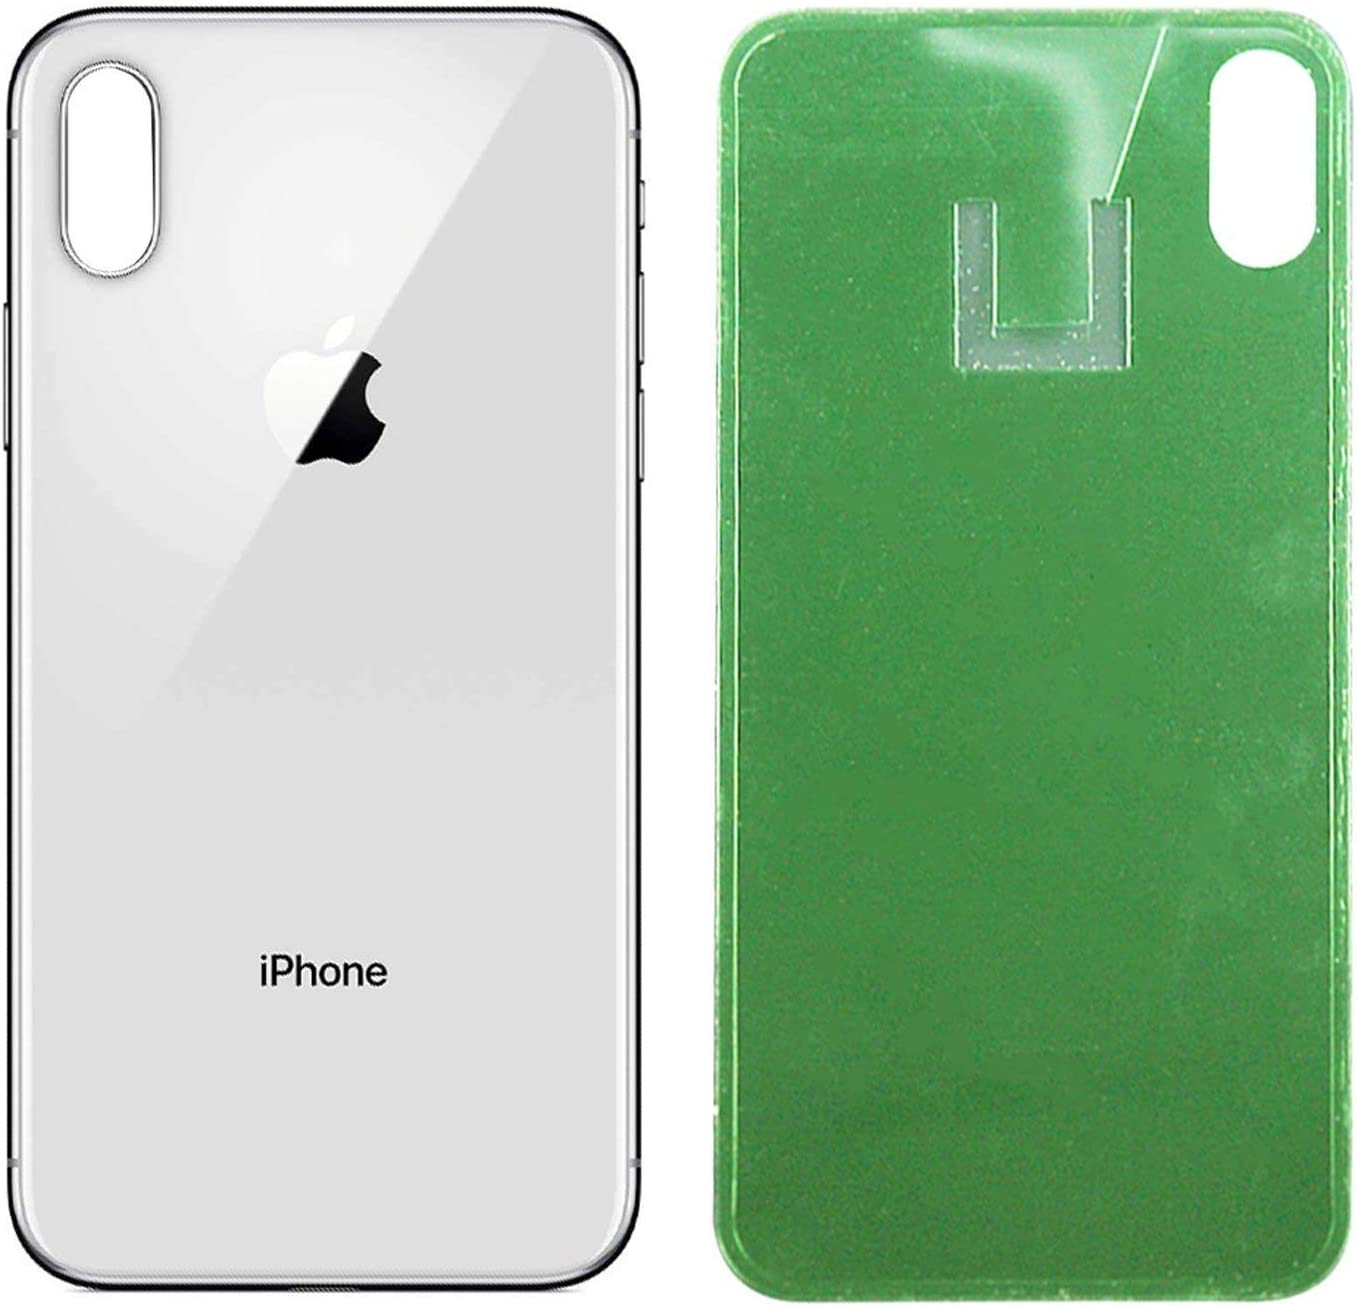 White Apple iPhone X Replacement Back Glass Cover Back Battery Door w//Pre-Installed Adhesive,Best Version Apple iPhone X All Models OEM Replacement